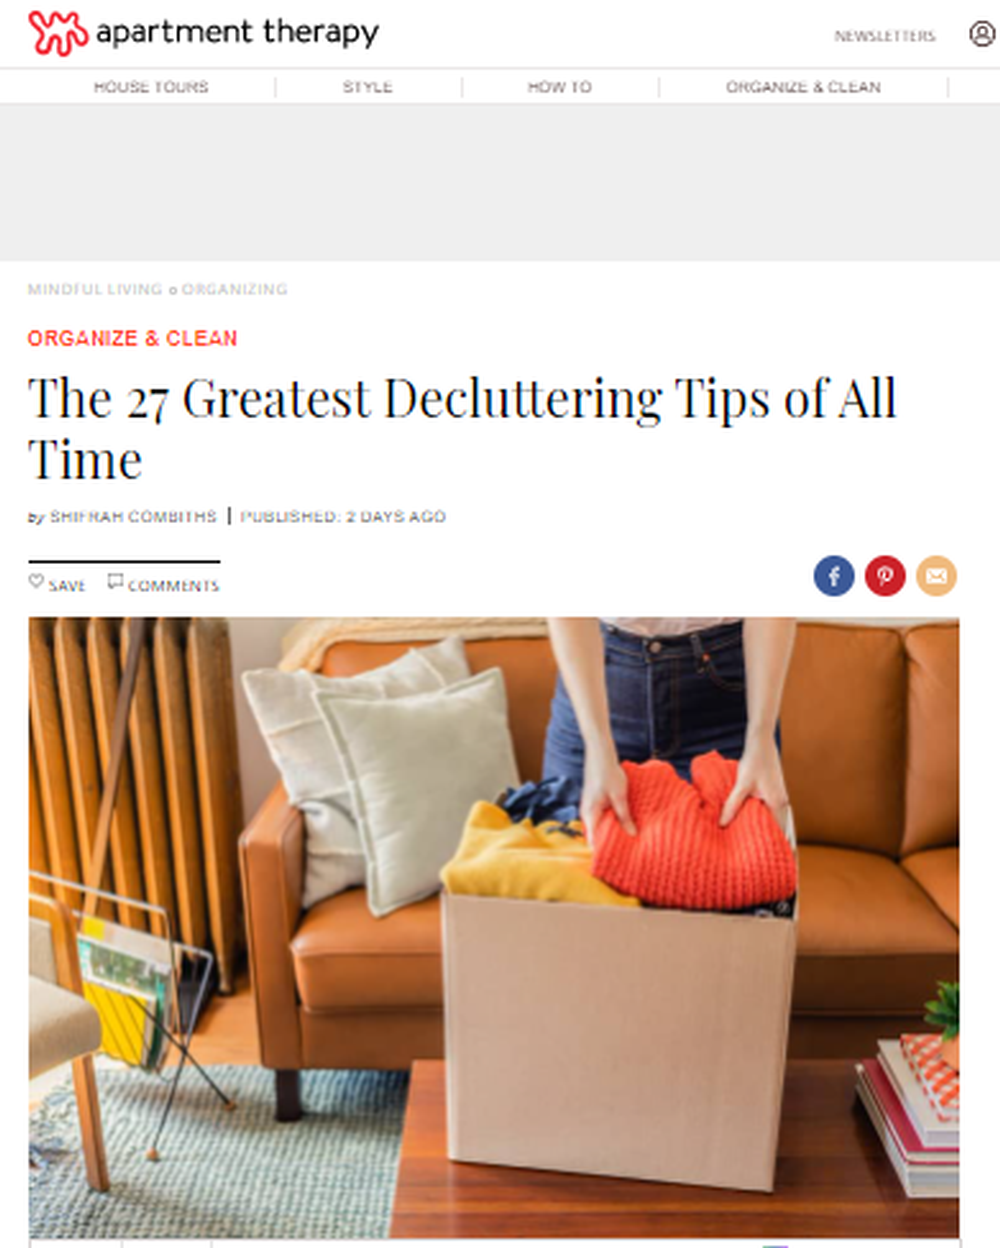 The_27_Best_Decluttering_Tips_of_All_Time_Apartment_Therapy (1).png